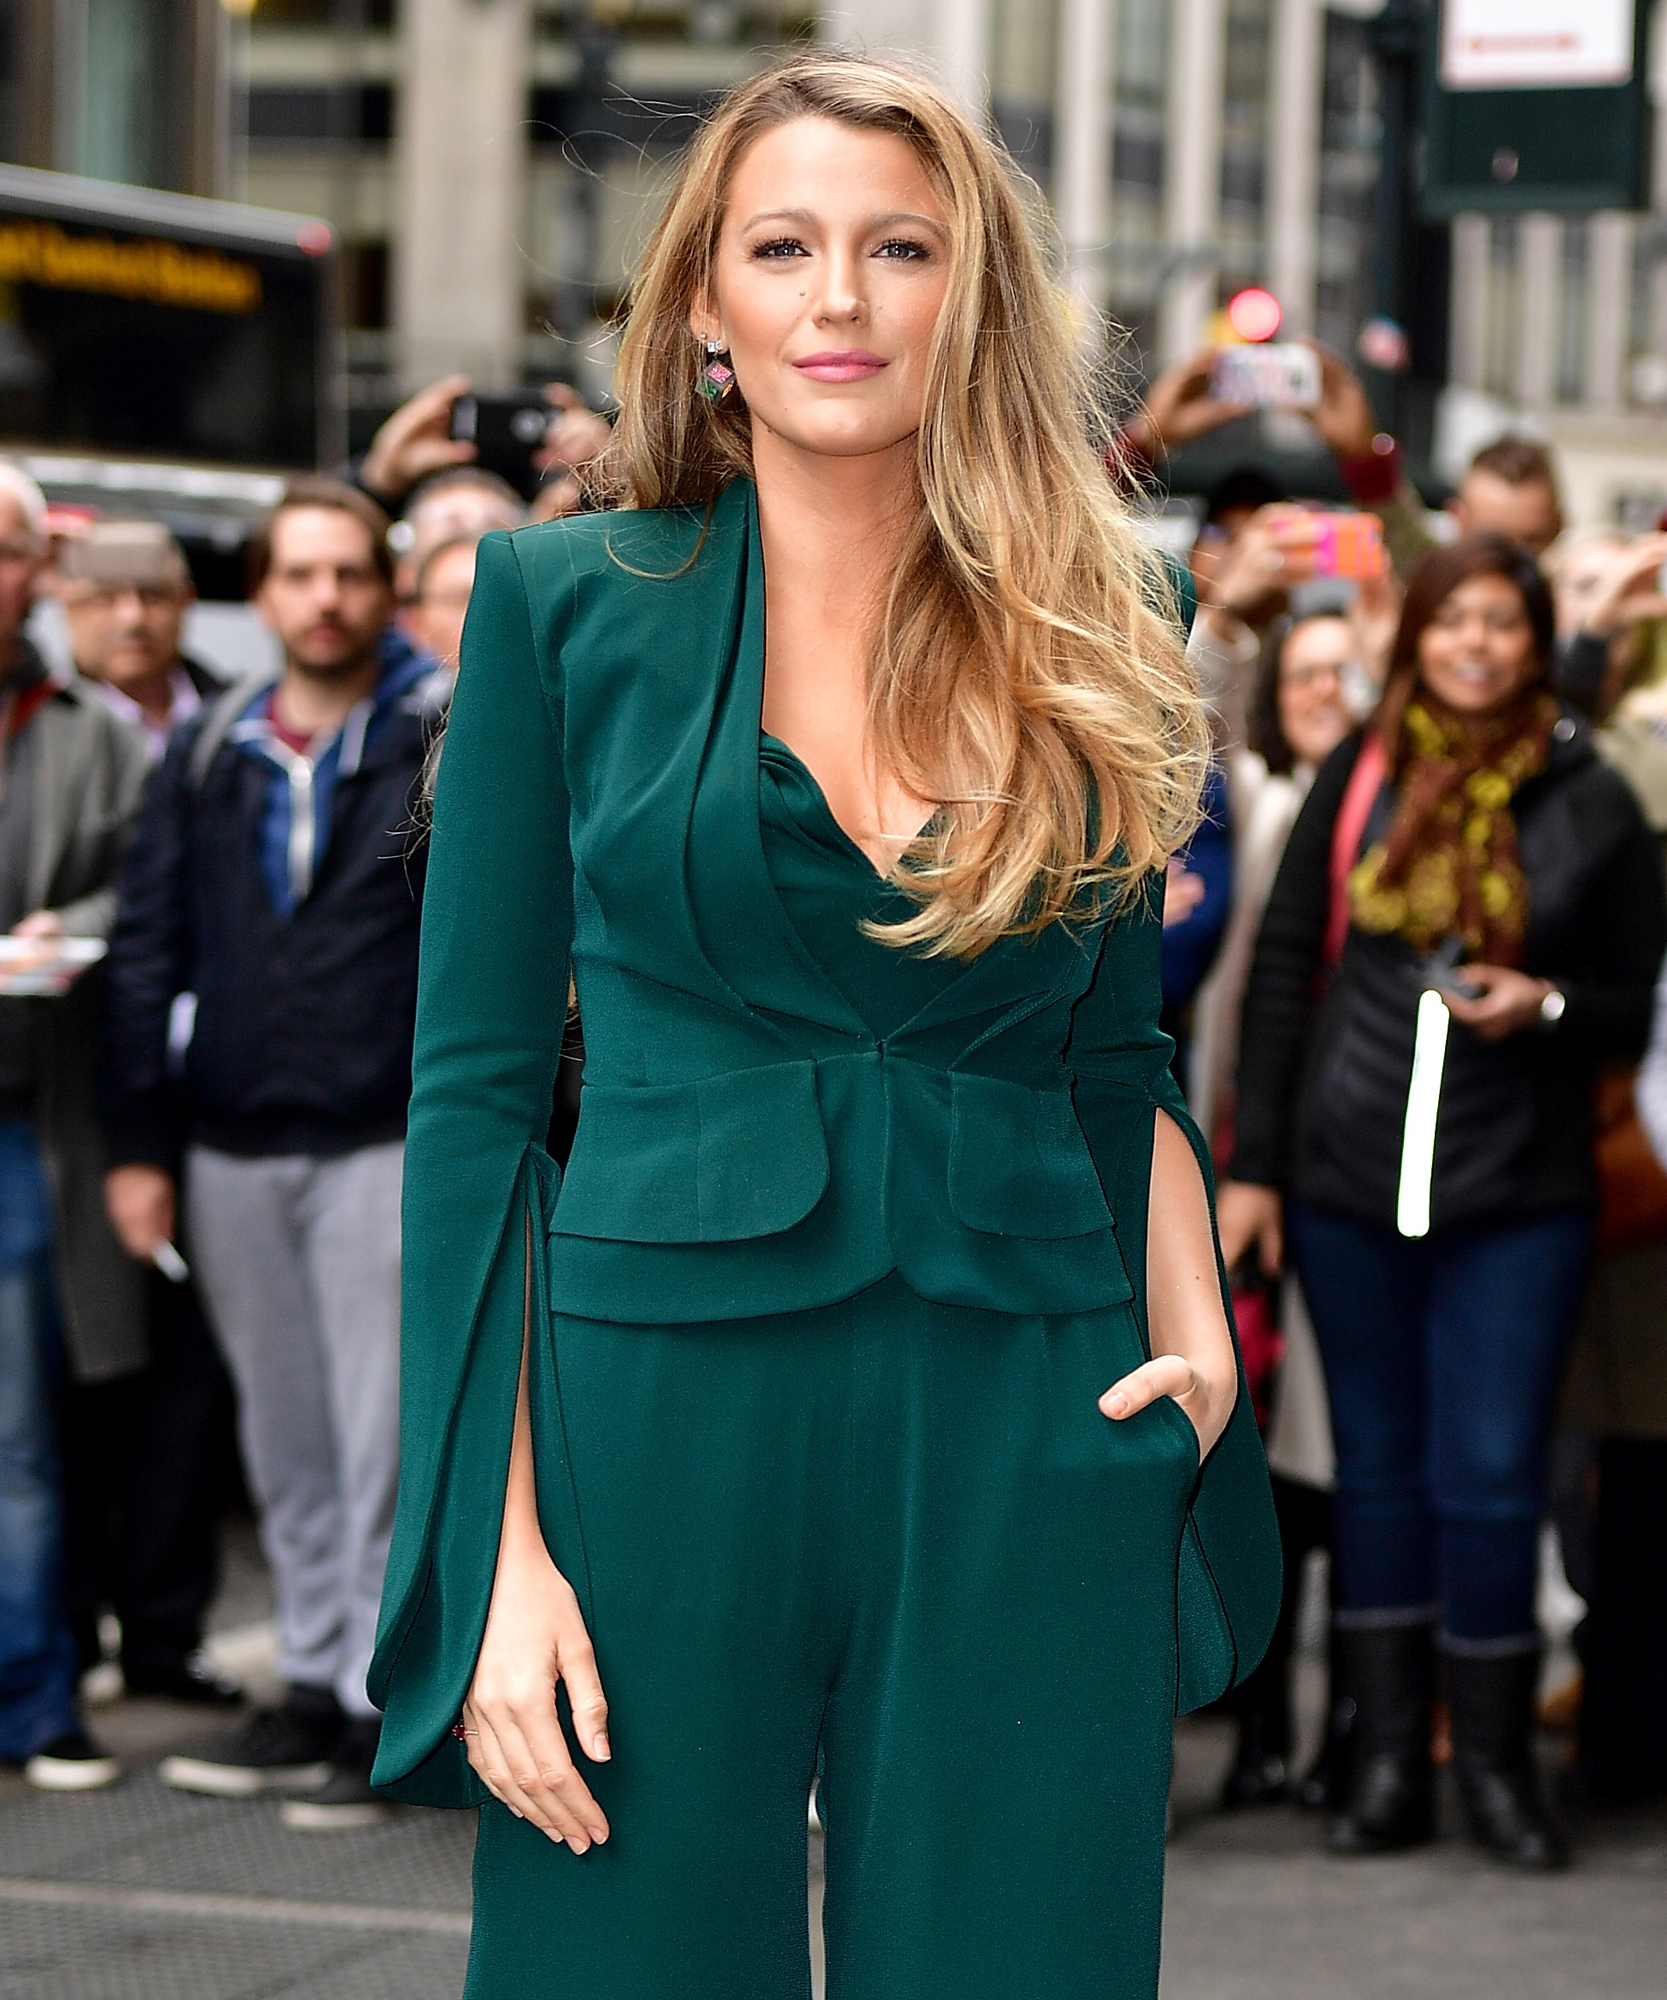 Blake Lively's Red Carpet Style